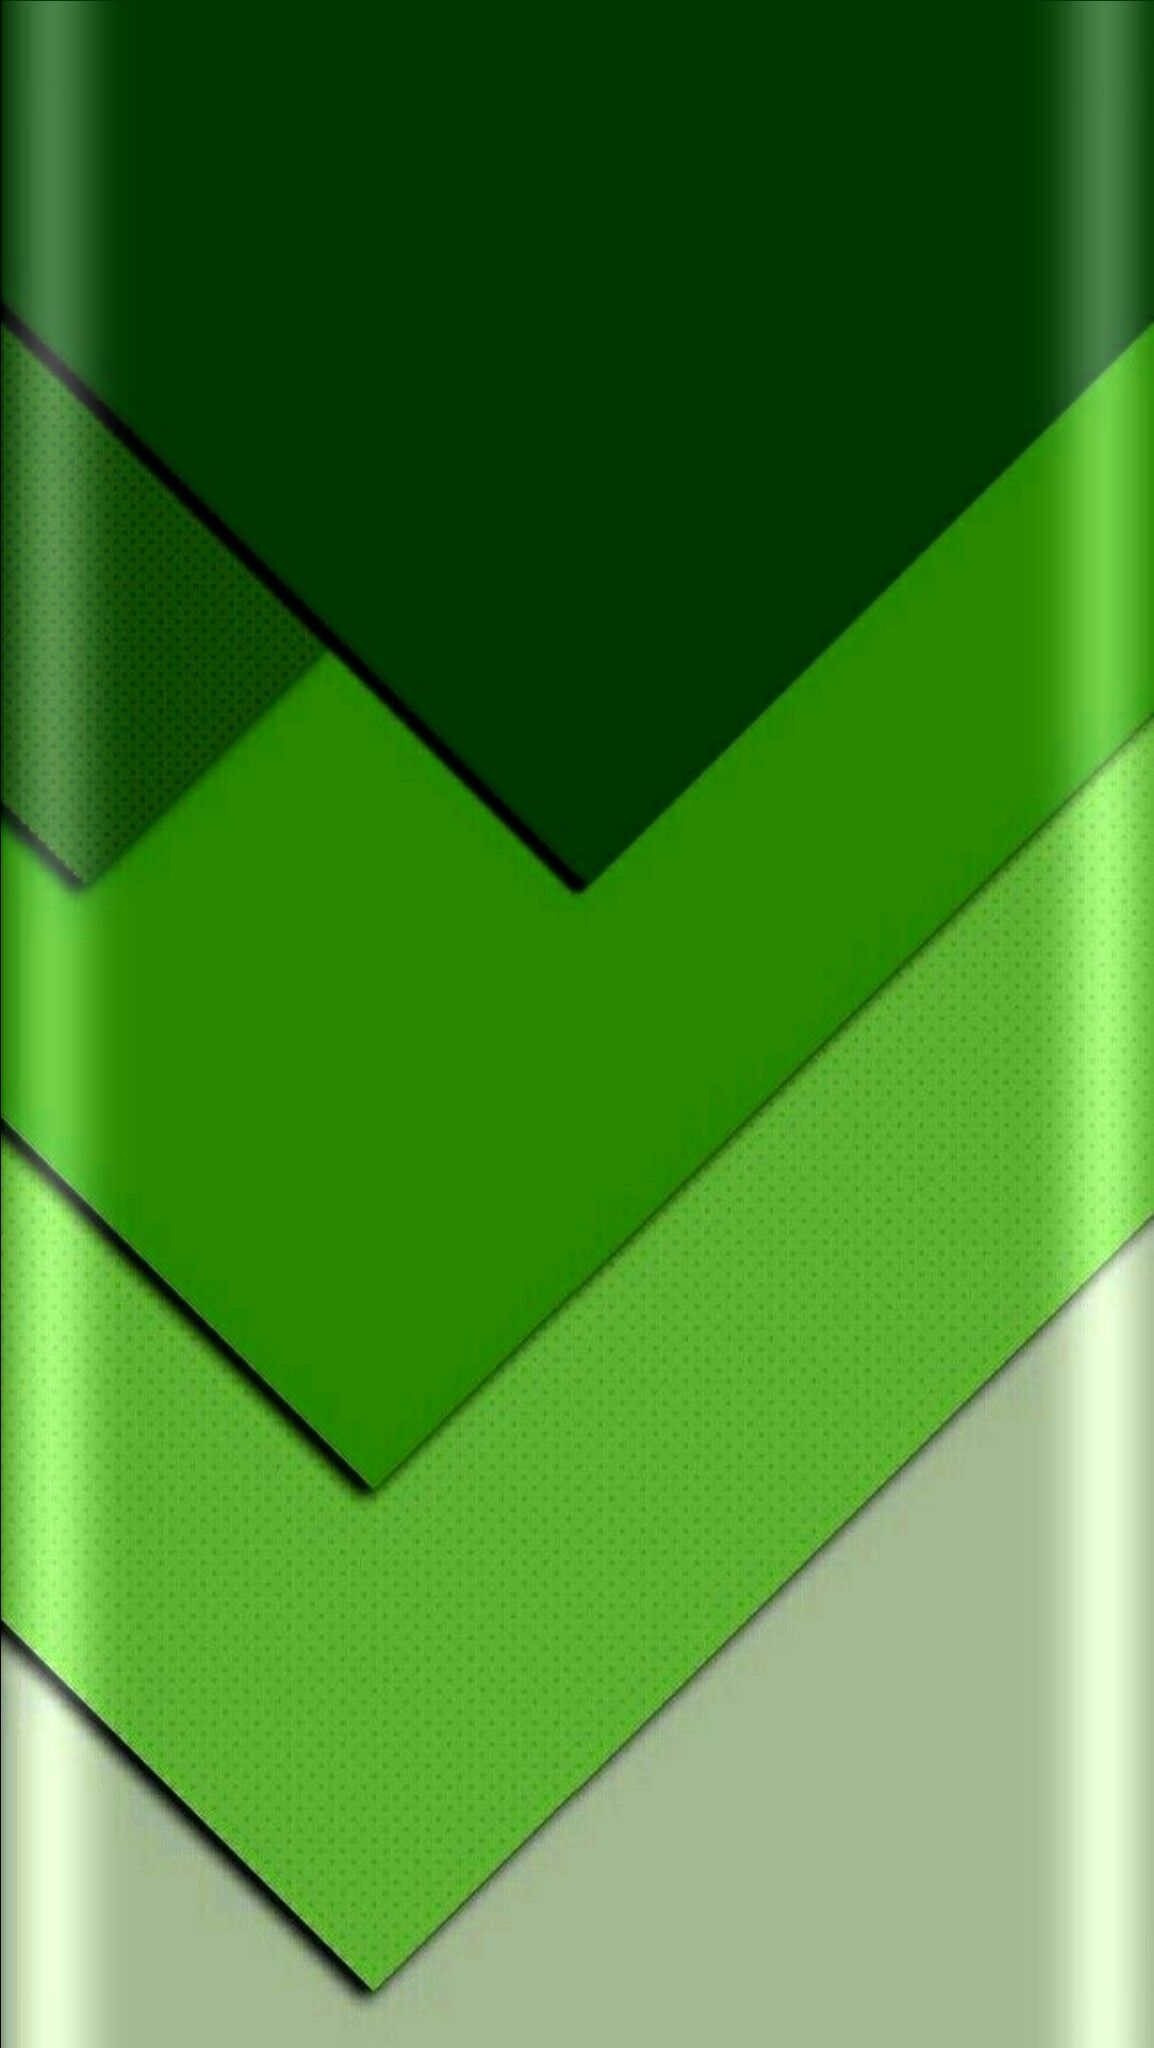 3d Wallpaper S8 Green Abstract Wallpaper Abstract And Geometric Wallpapers